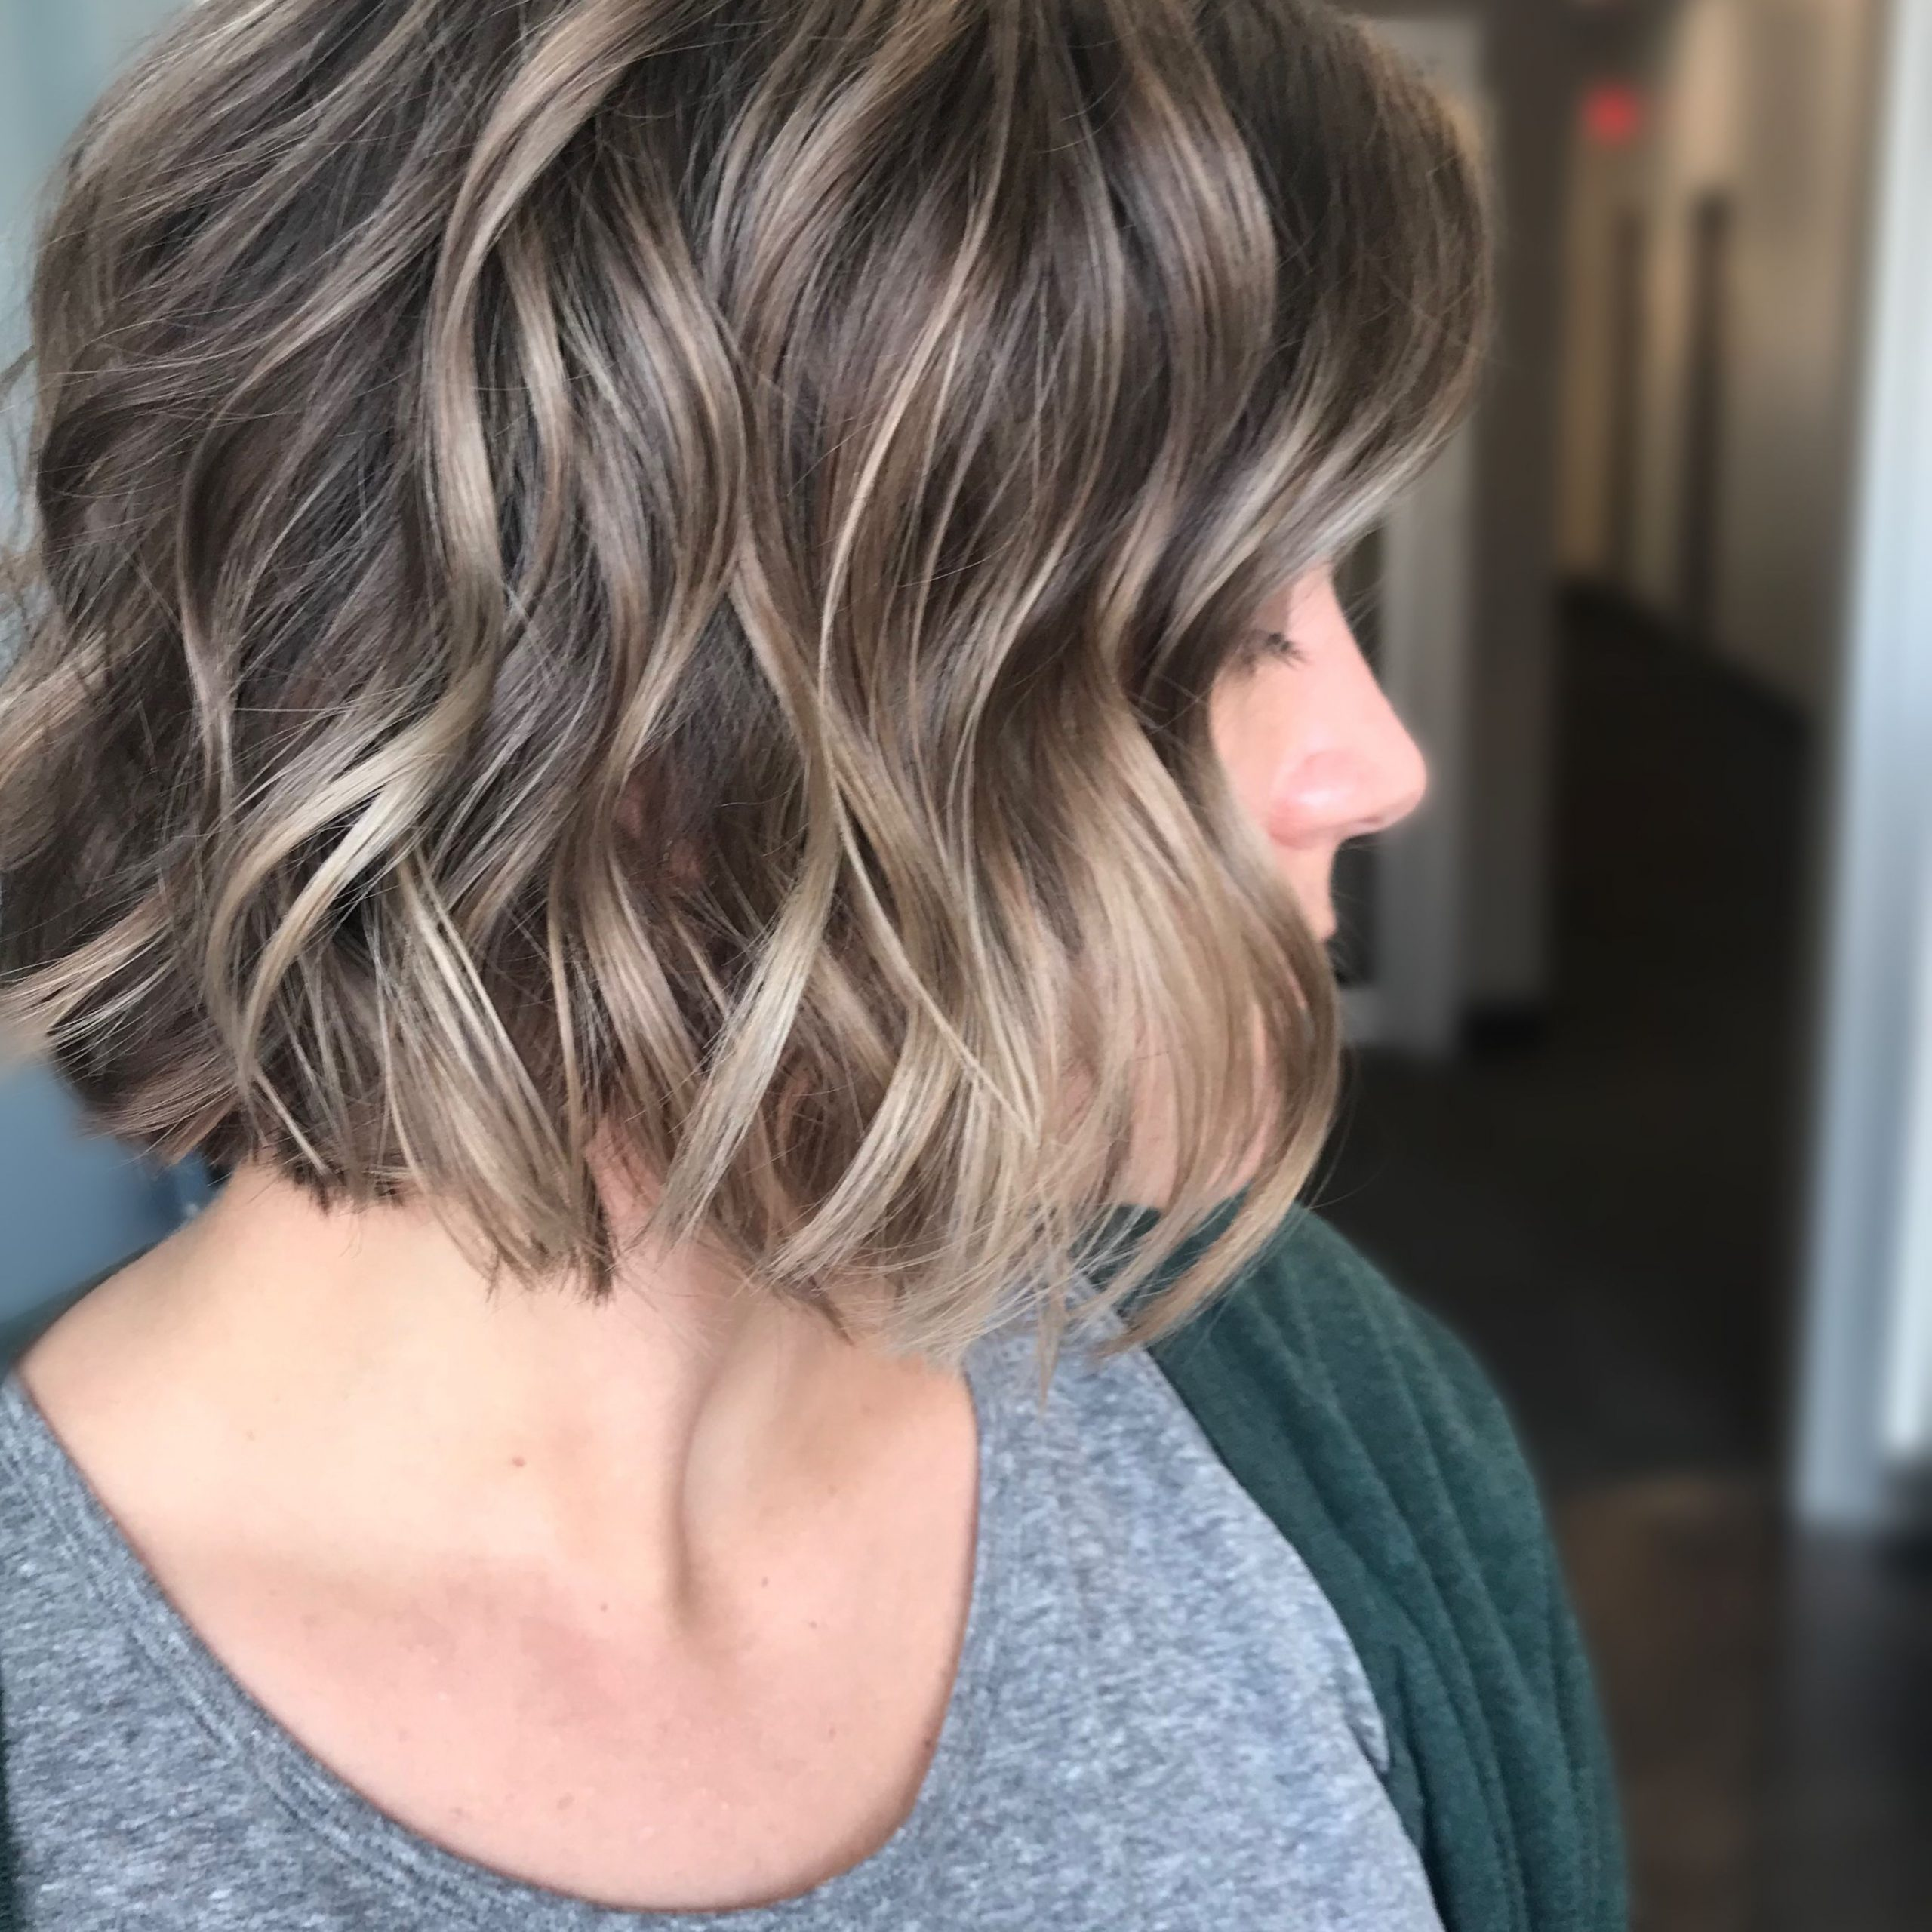 Keeping It Modern With This Blunt Bob Haircut And Some Within Balayaged Choppy Bob Haircuts (View 10 of 20)